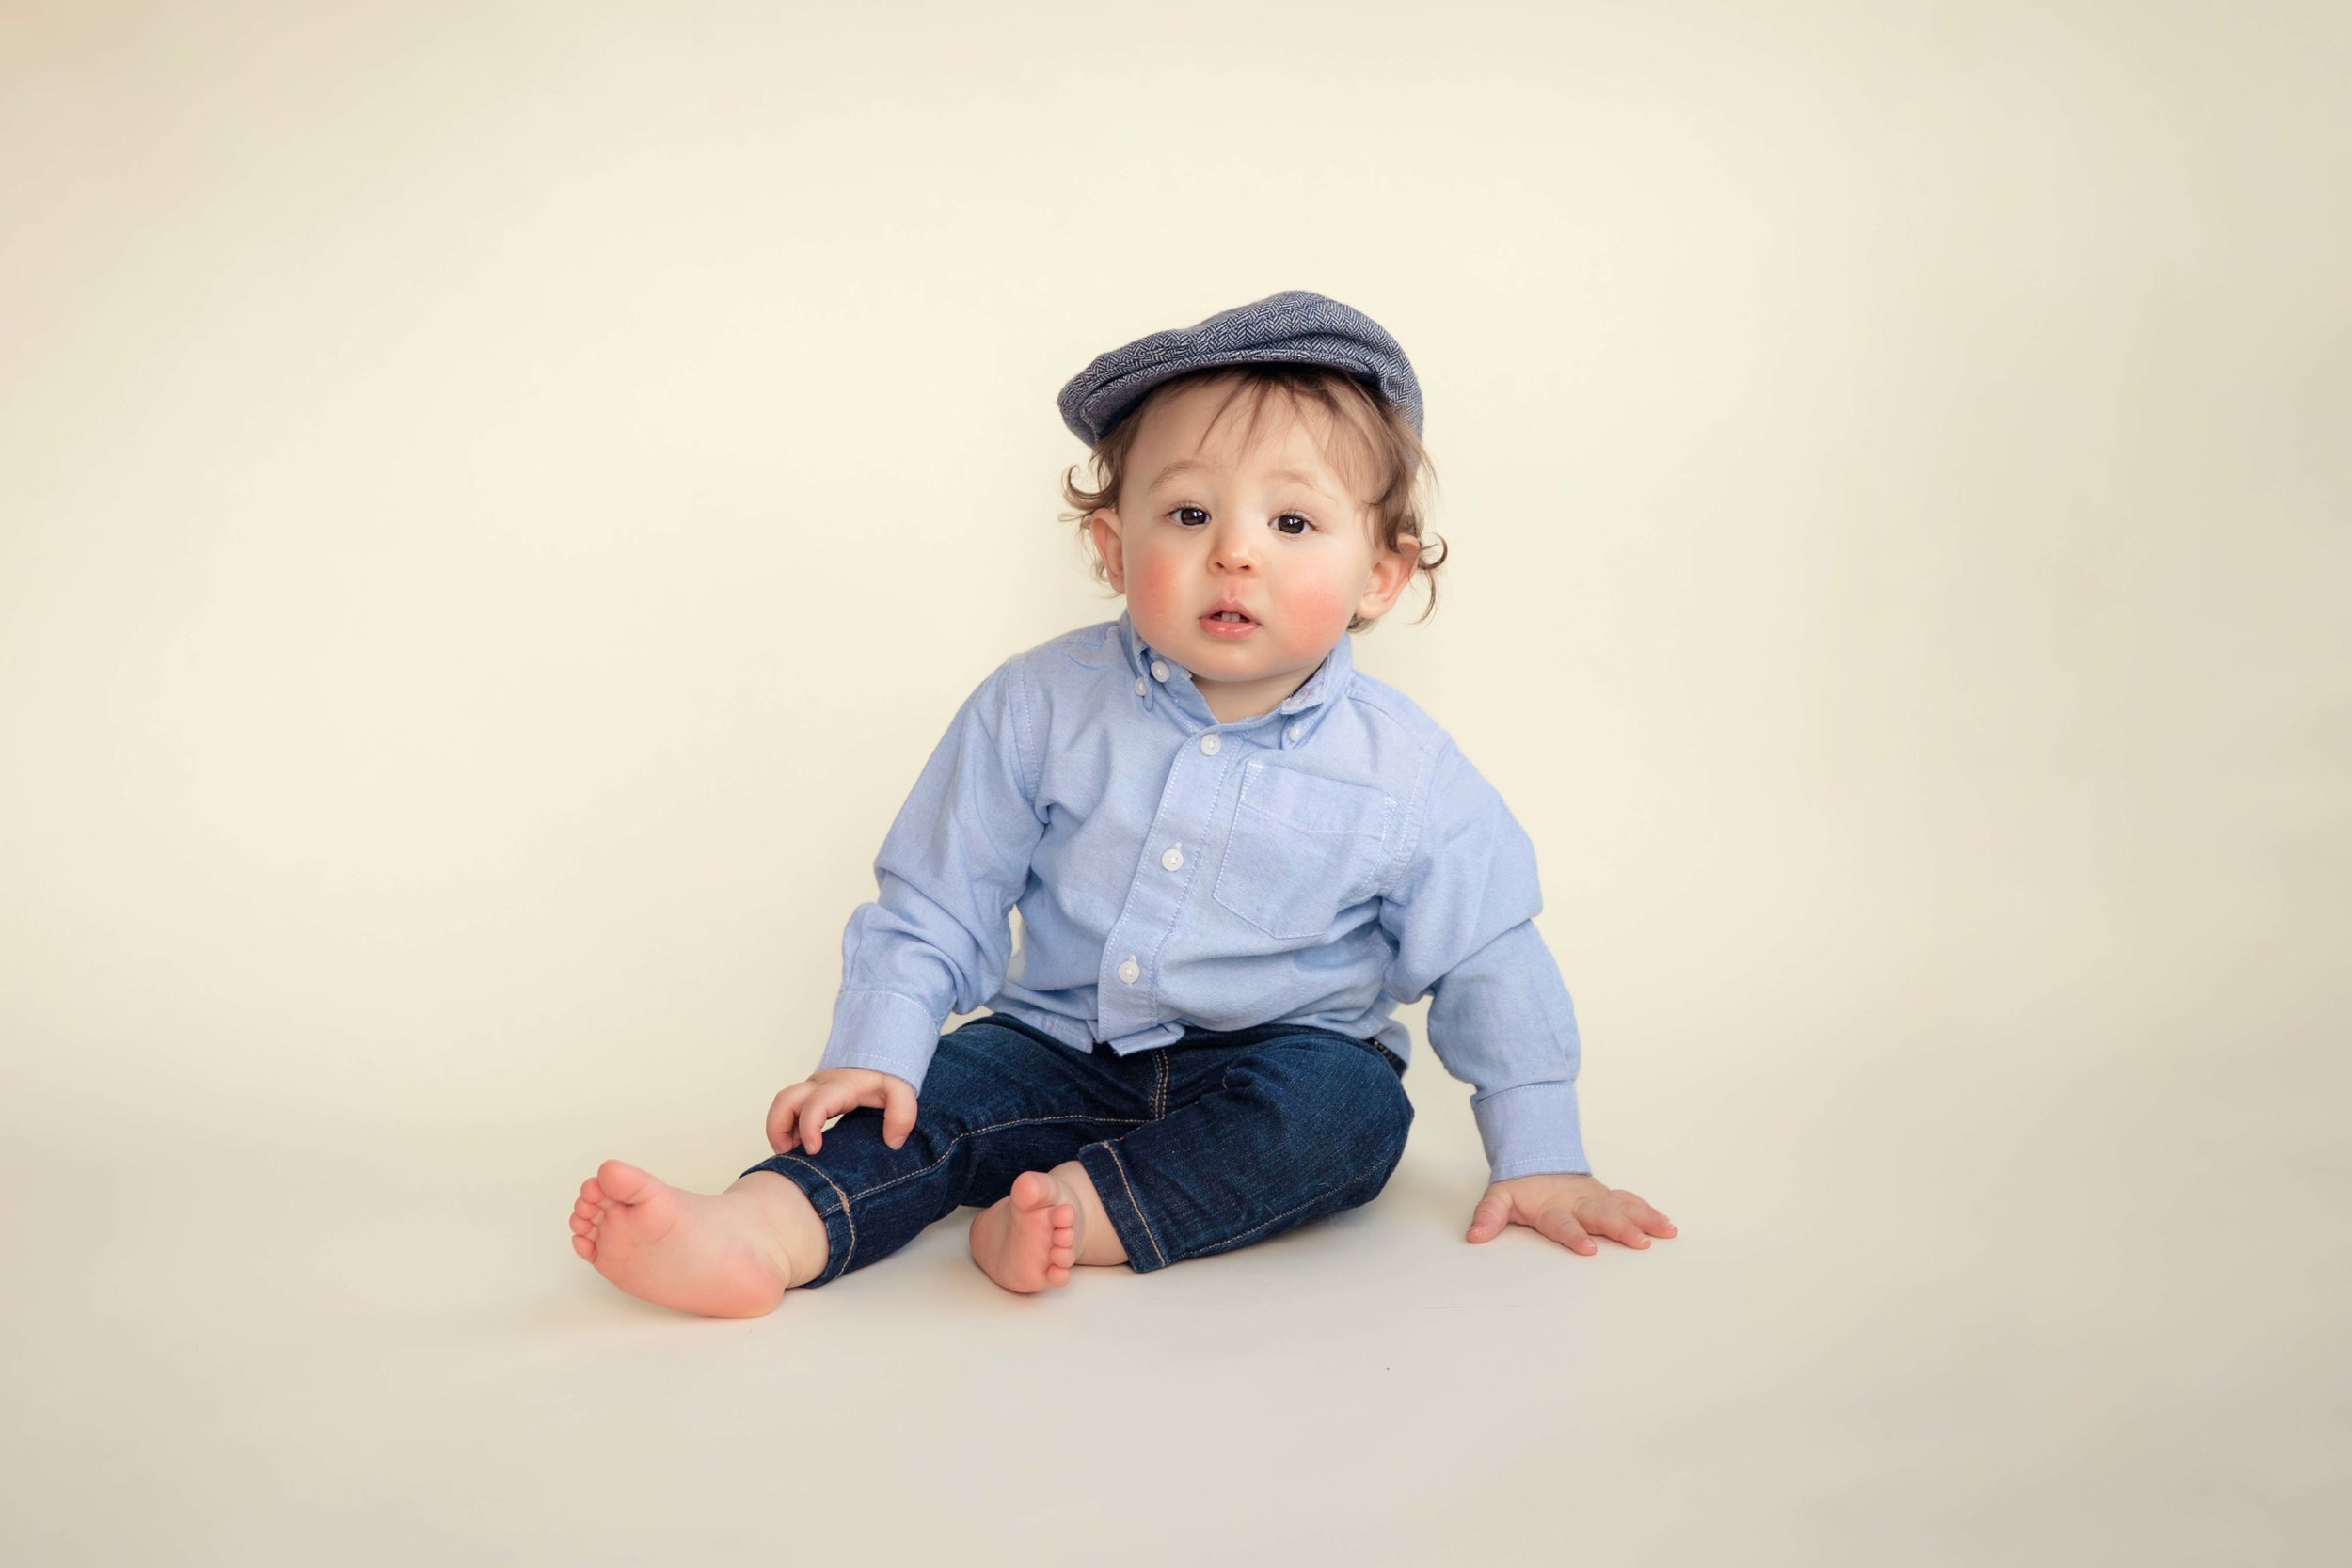 Baby boy is sitting on a seamless backdrop and is wearing a cute hat.